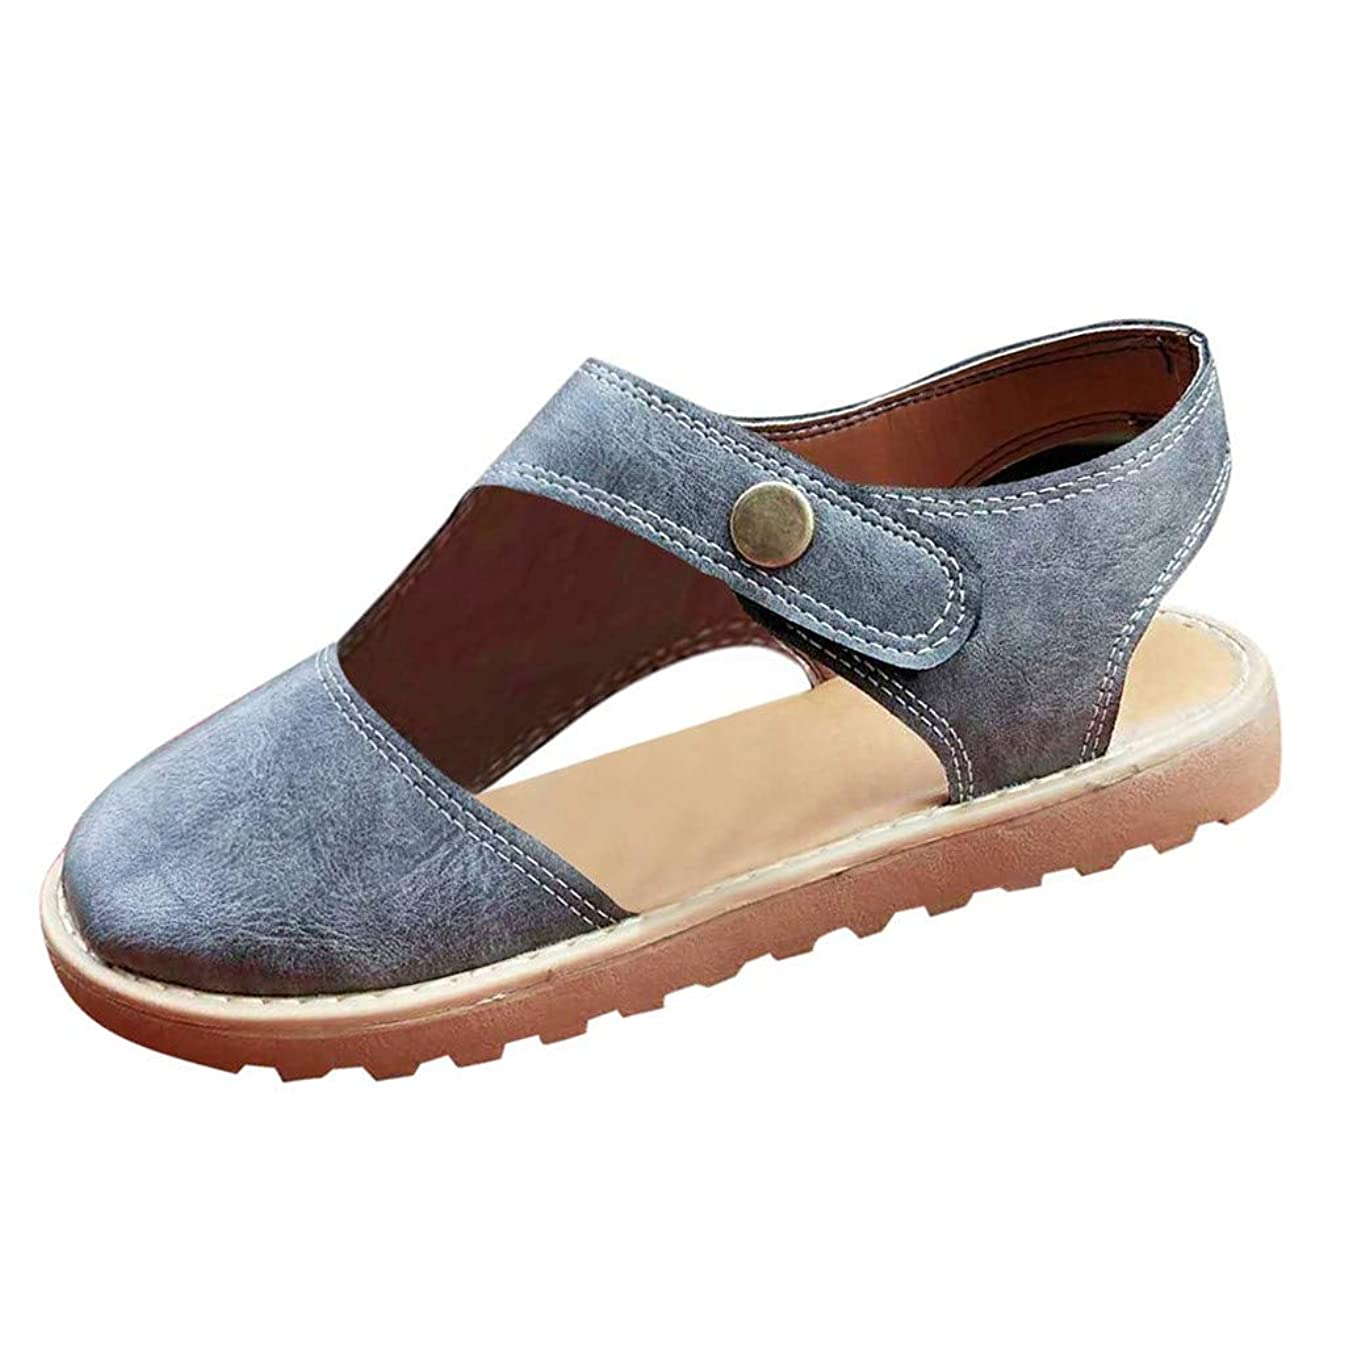 〓COOlCCI〓Women Retro Round Toe Sandals Sling Back Hook & Loop Sandals Flats Breathable Leather Shoes Flat